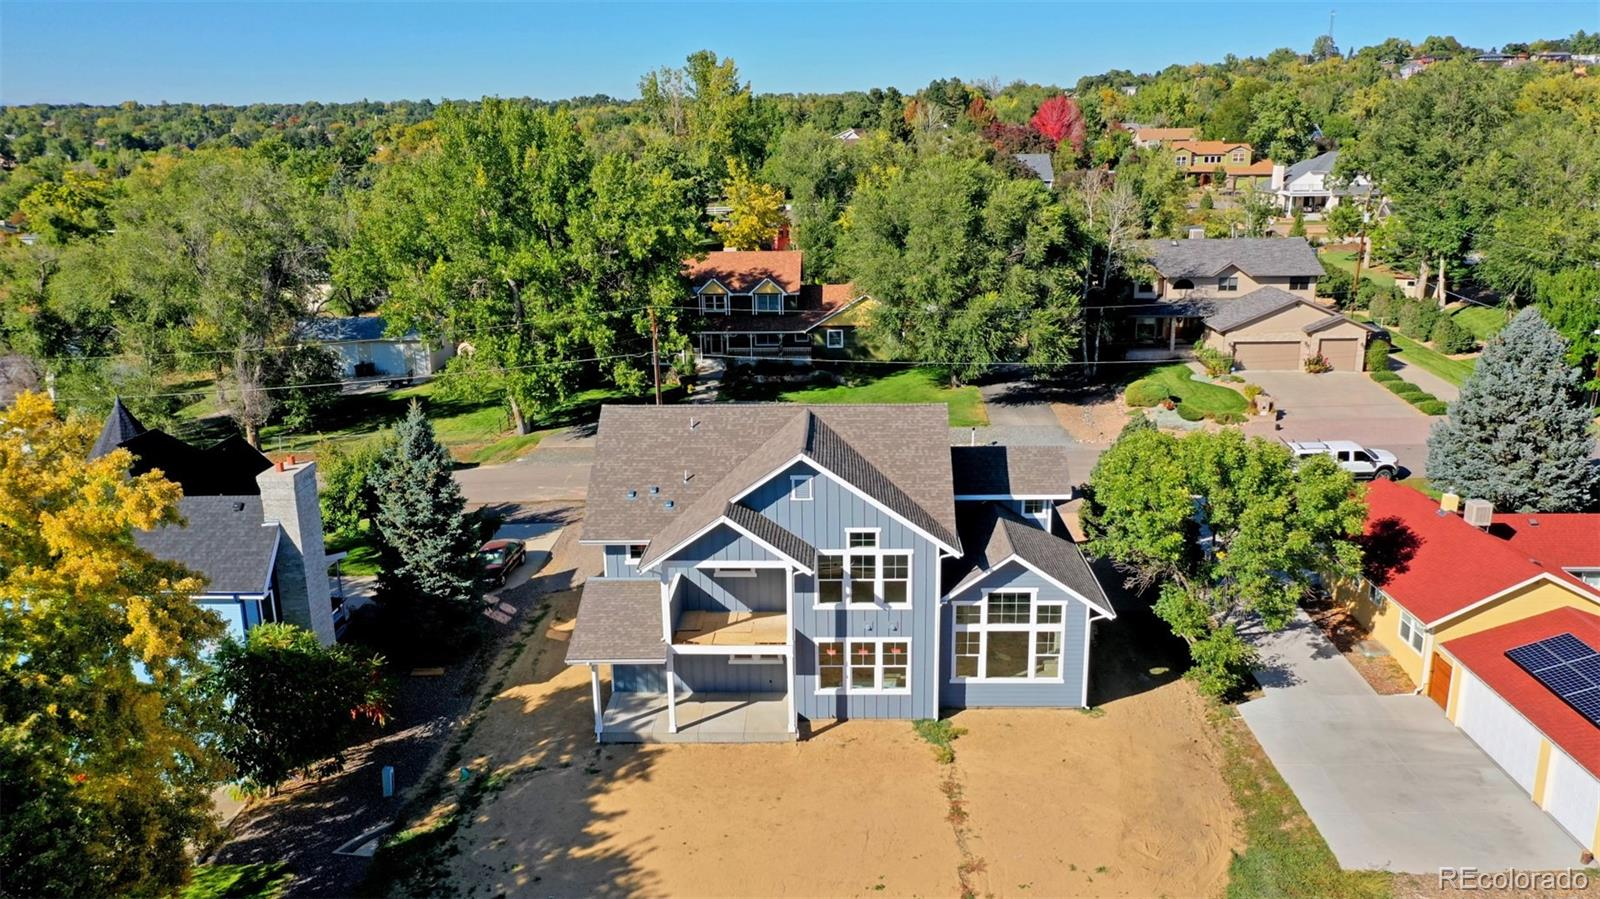 MLS# 6218447 - 6 - 9080 W 64th Place, Arvada, CO 80004